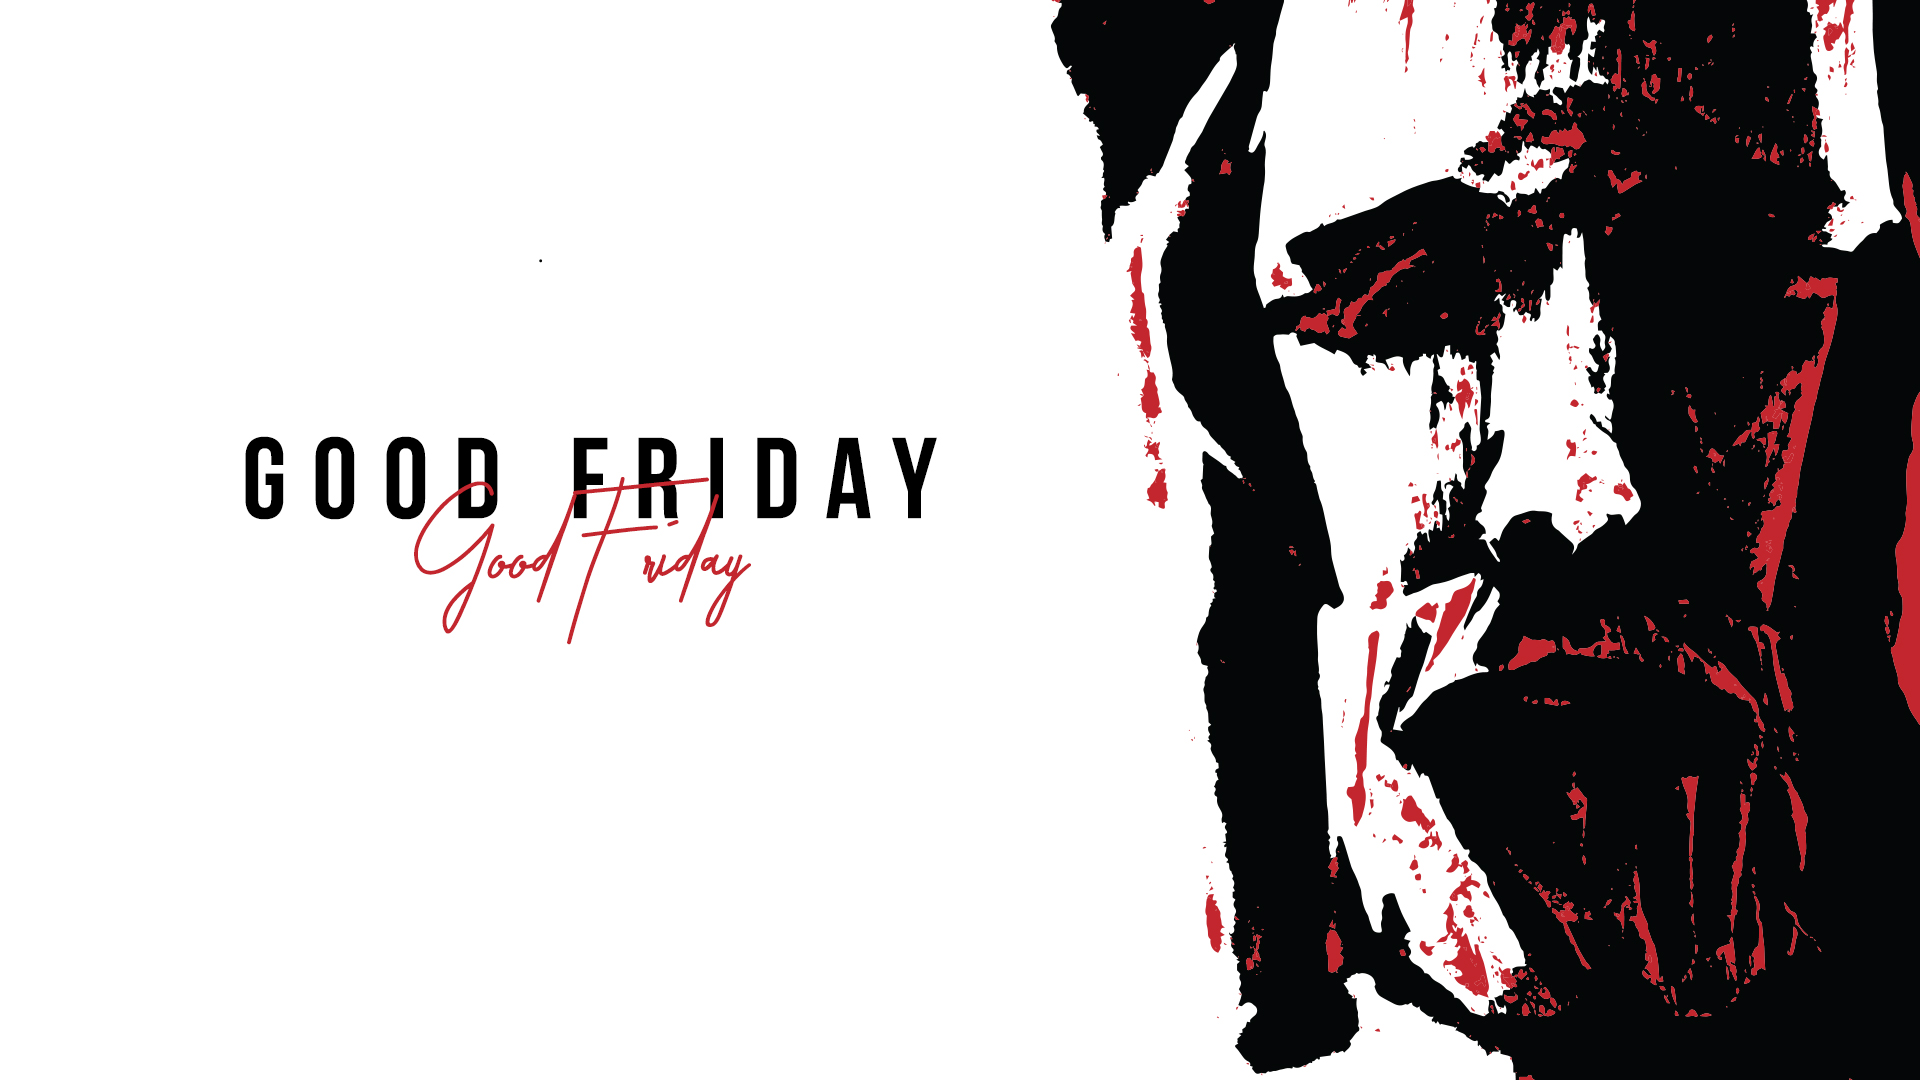 Good-Friday, Jesus crucified, Pslam 22